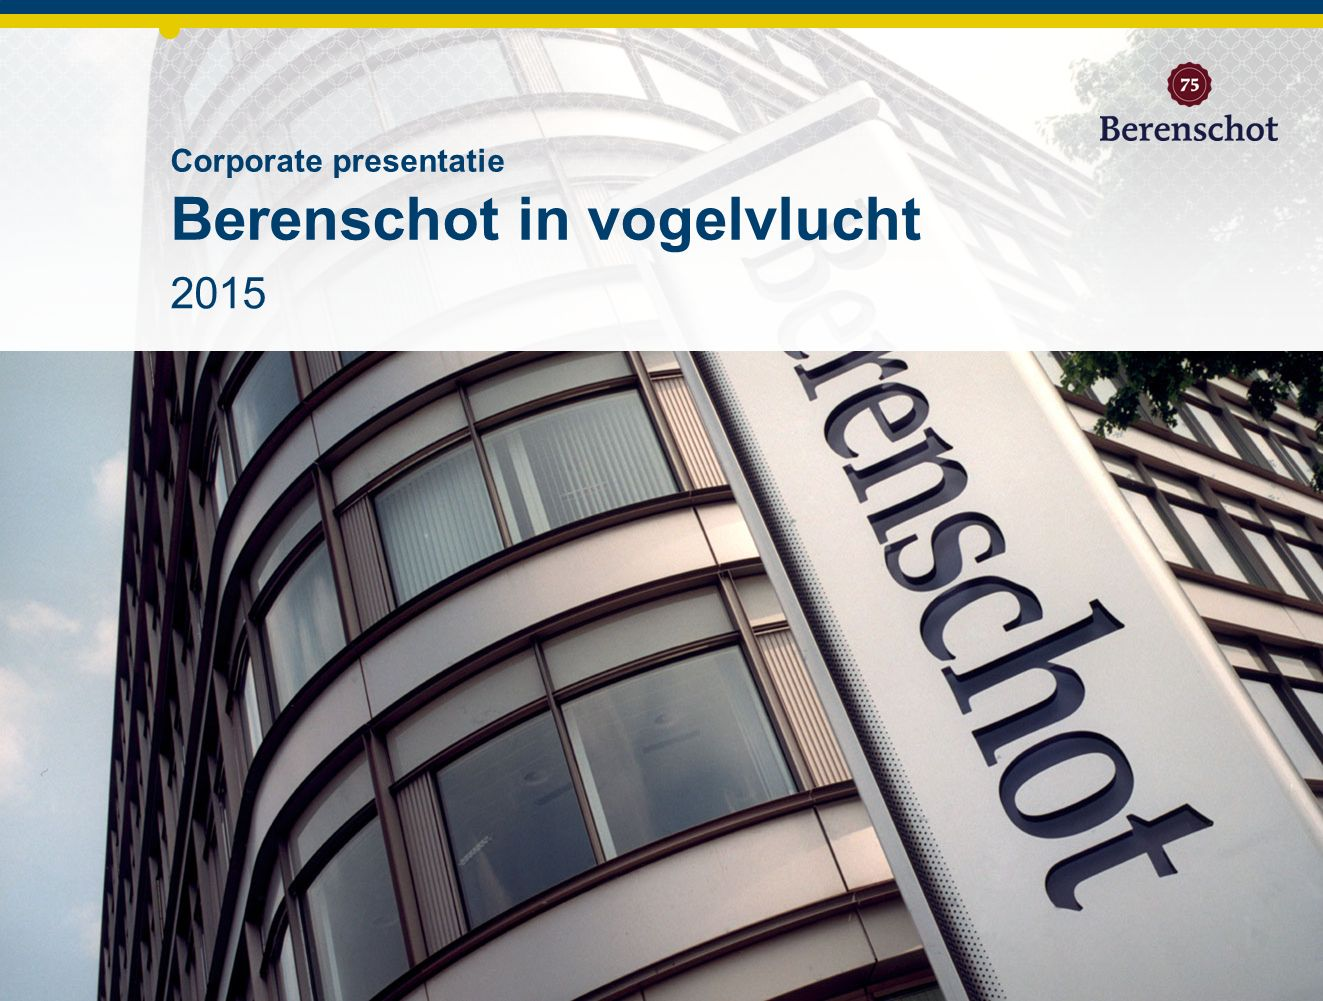 2015 Corporate presentatie Berenschot in vogelvlucht